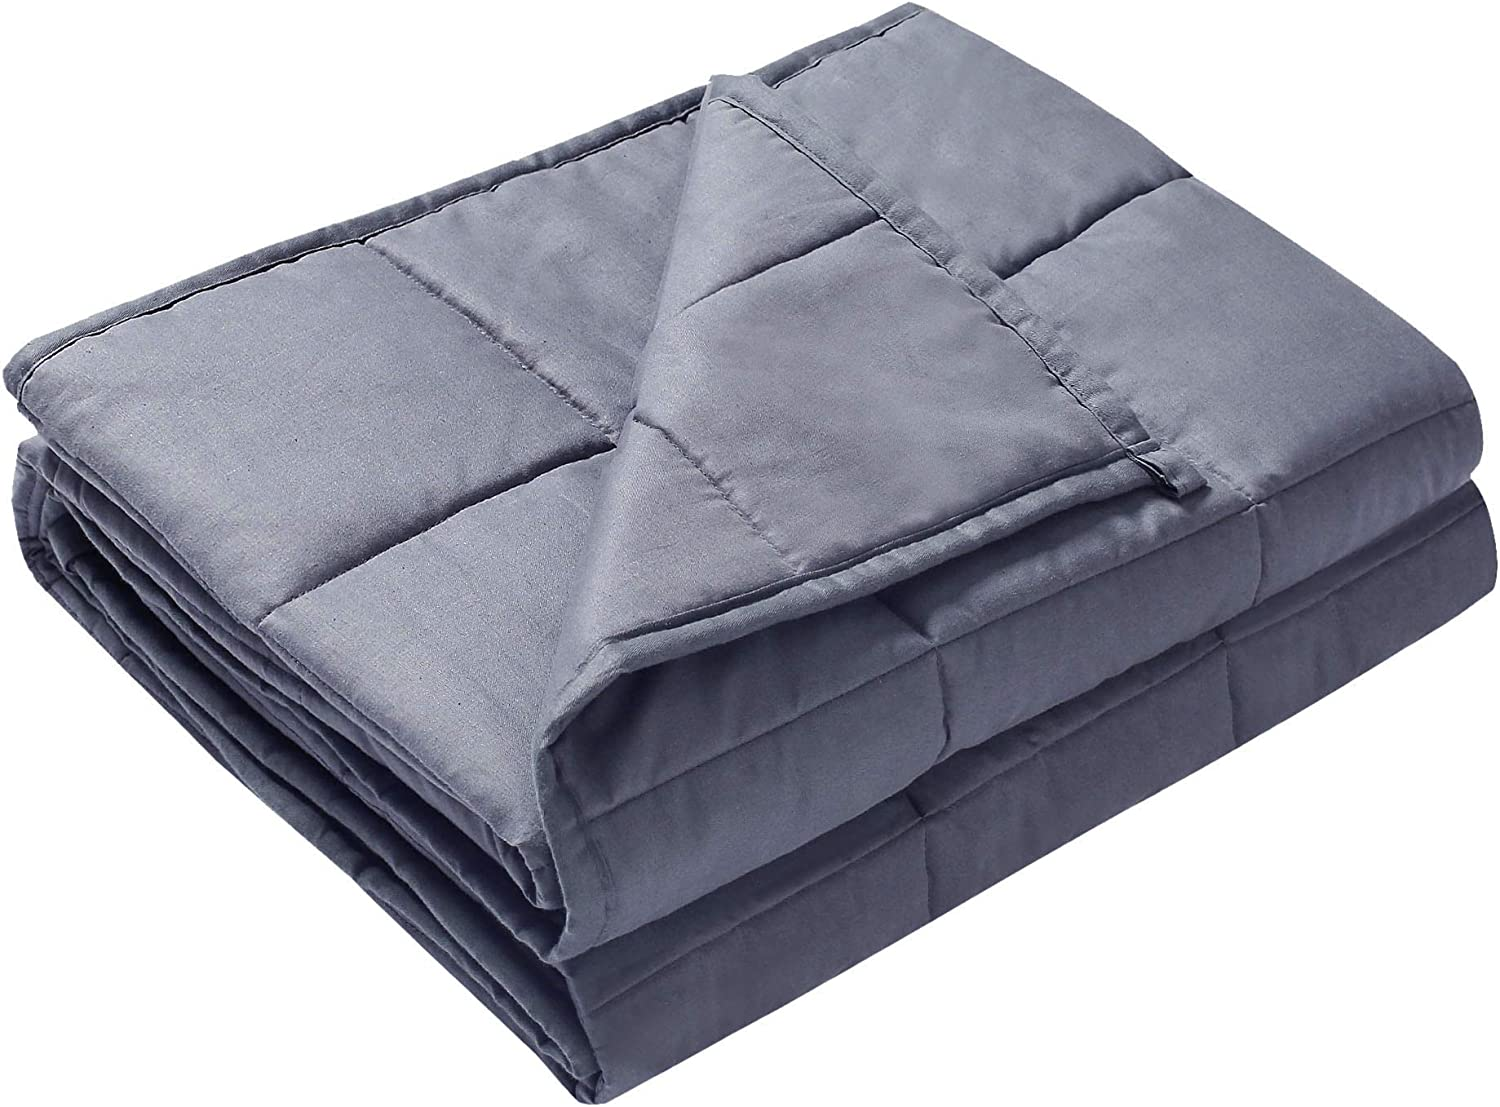 B07VWM8DYX Alomidds Weighted Blanket 5 lbs| 36''x48'', for 40-60 lbs Individual, Heavy Blanket for Kids Calm Sleeping 100% Cotton Material with Glass Beads| Grey (5lbs-36''x48'') 71iKCio3qNL